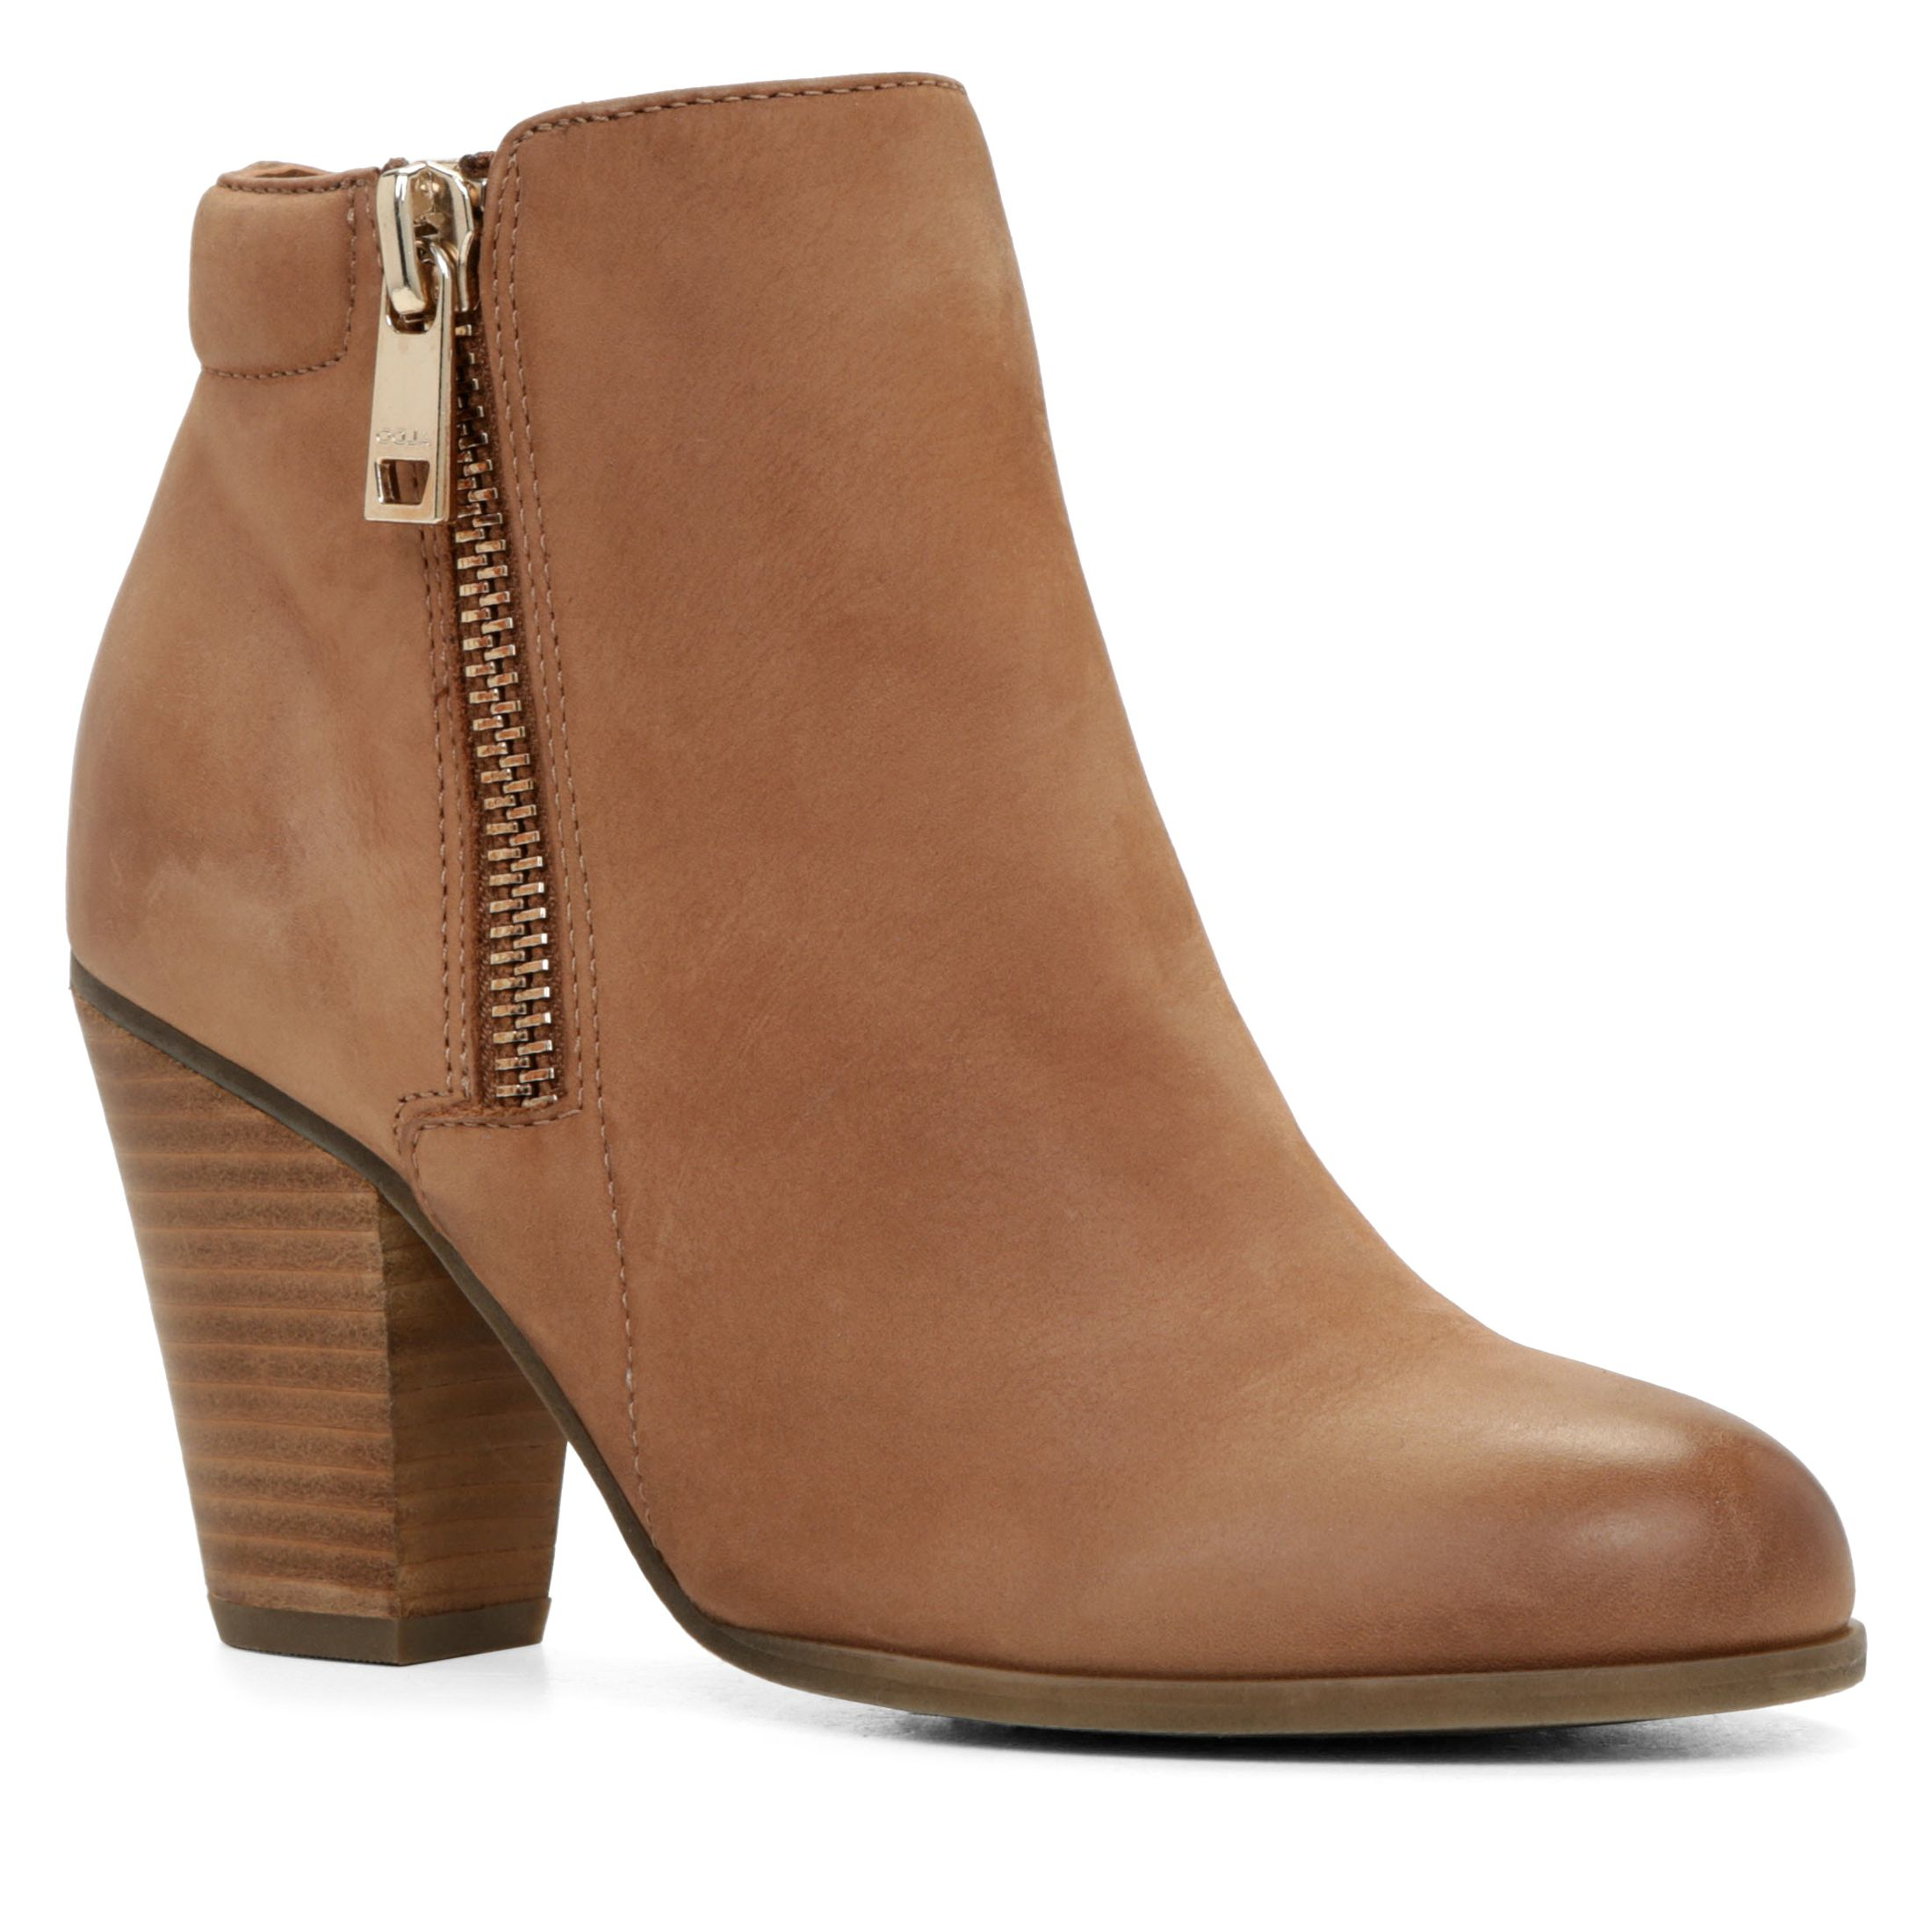 Shop women's boots at obmenvisitami.tk and see our entire collection of booties, tall boots and over the knee boots for women. Cole Haan.